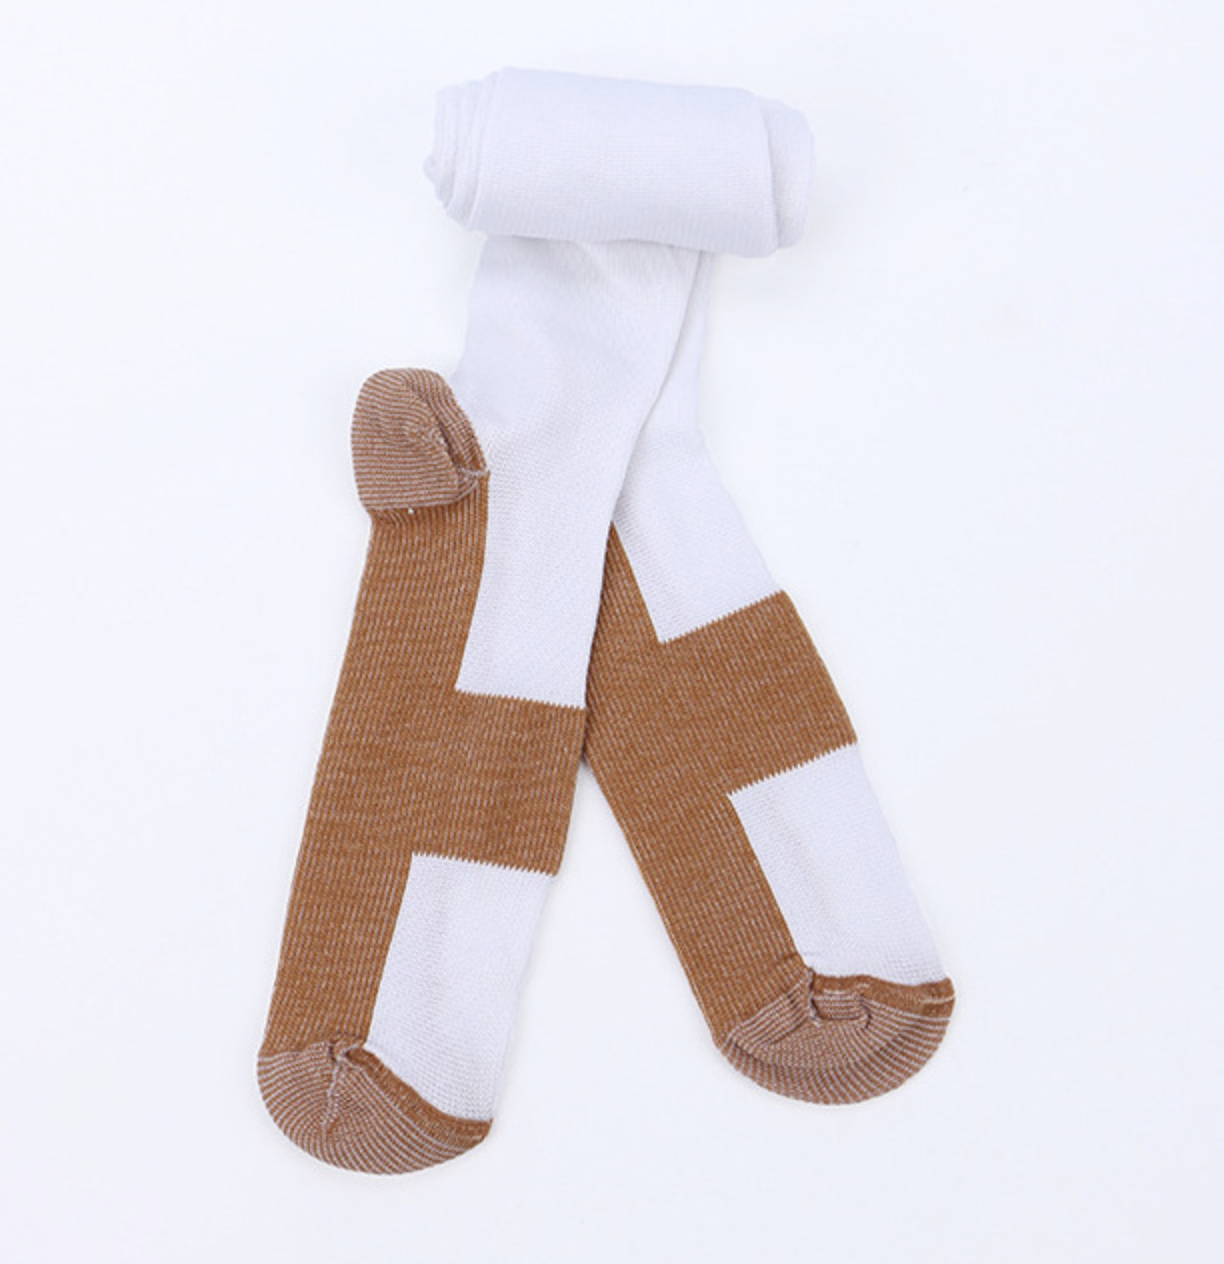 Copper Compression Stockings 20-30mmHg Support Socks Miracle Calf Men's Women's 8